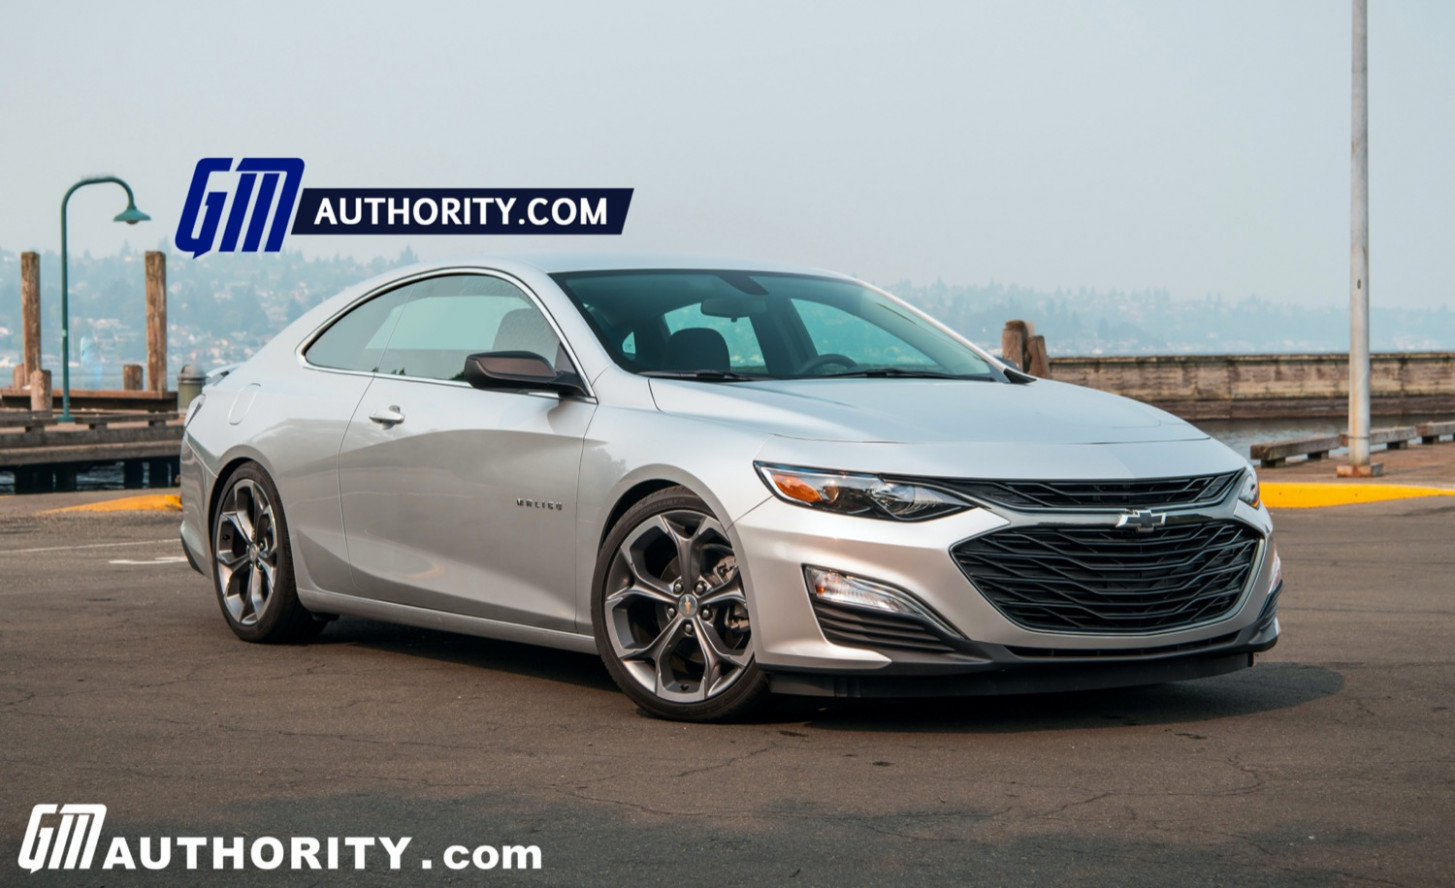 Redesign and Concept 2022 Chevy Malibu